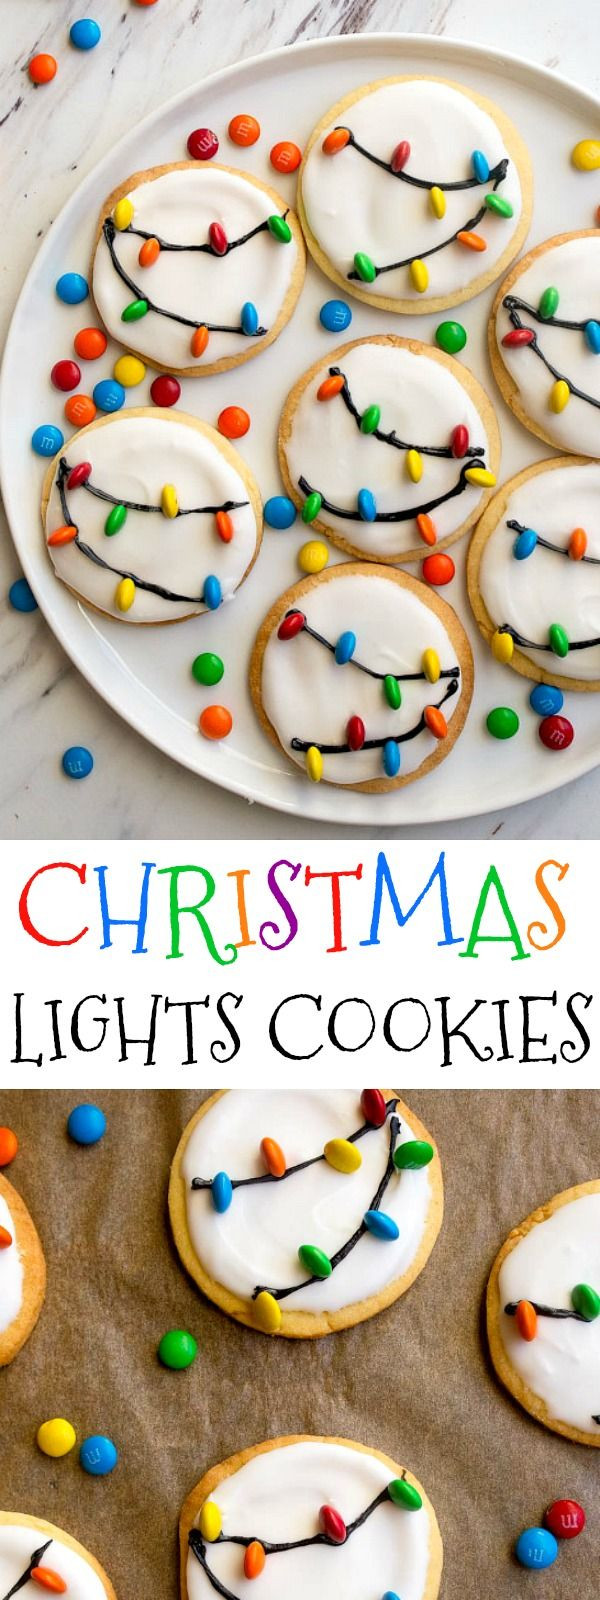 America'S Test Kitchen Christmas Cookies  best Bloggers Best Baking Recipes images on Pinterest